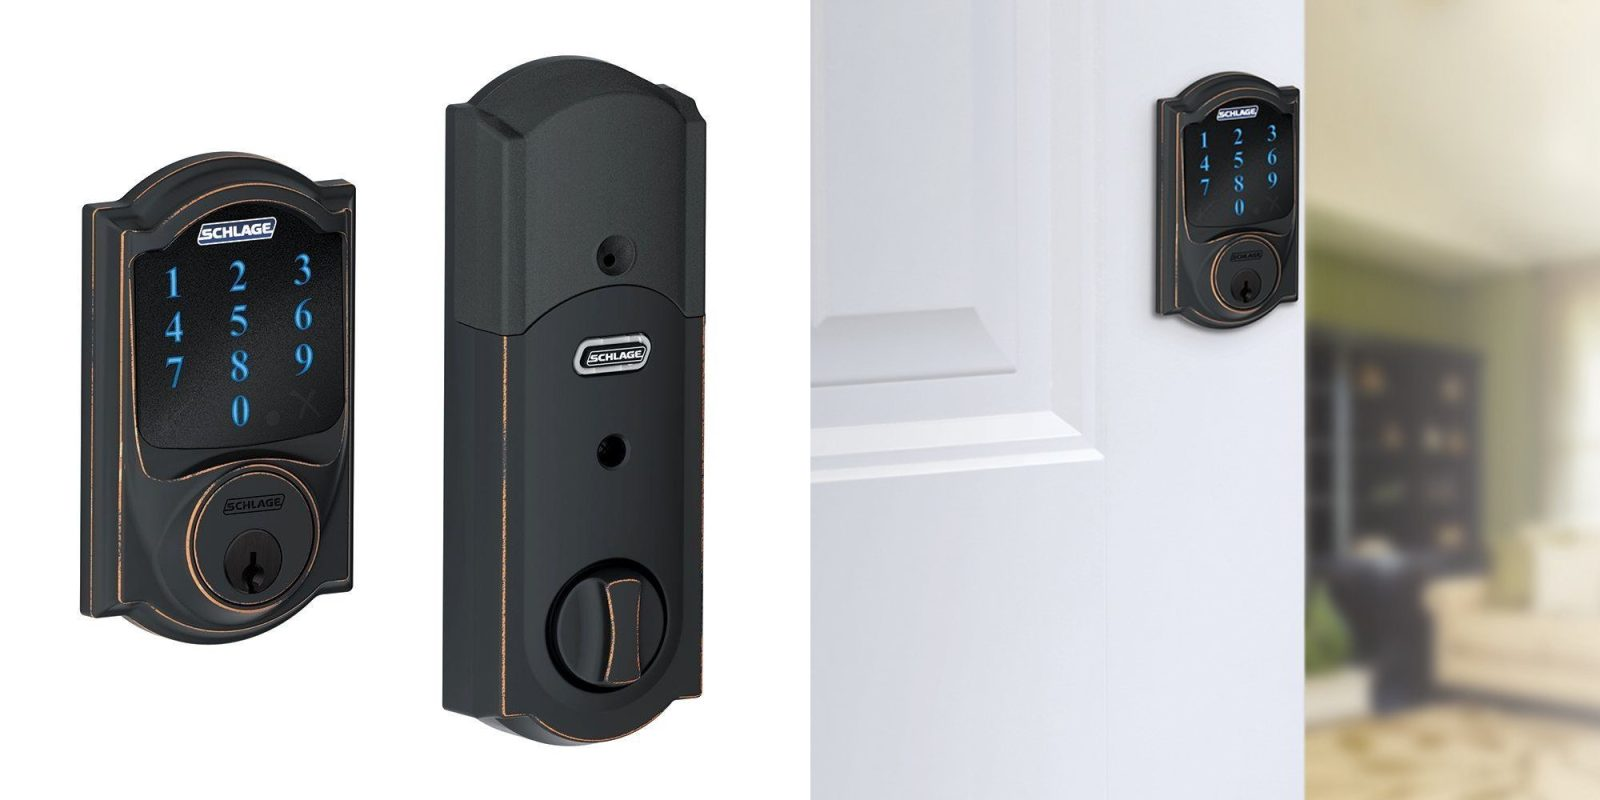 Schlage and Kwikset smart locks are on sale today at Amazon